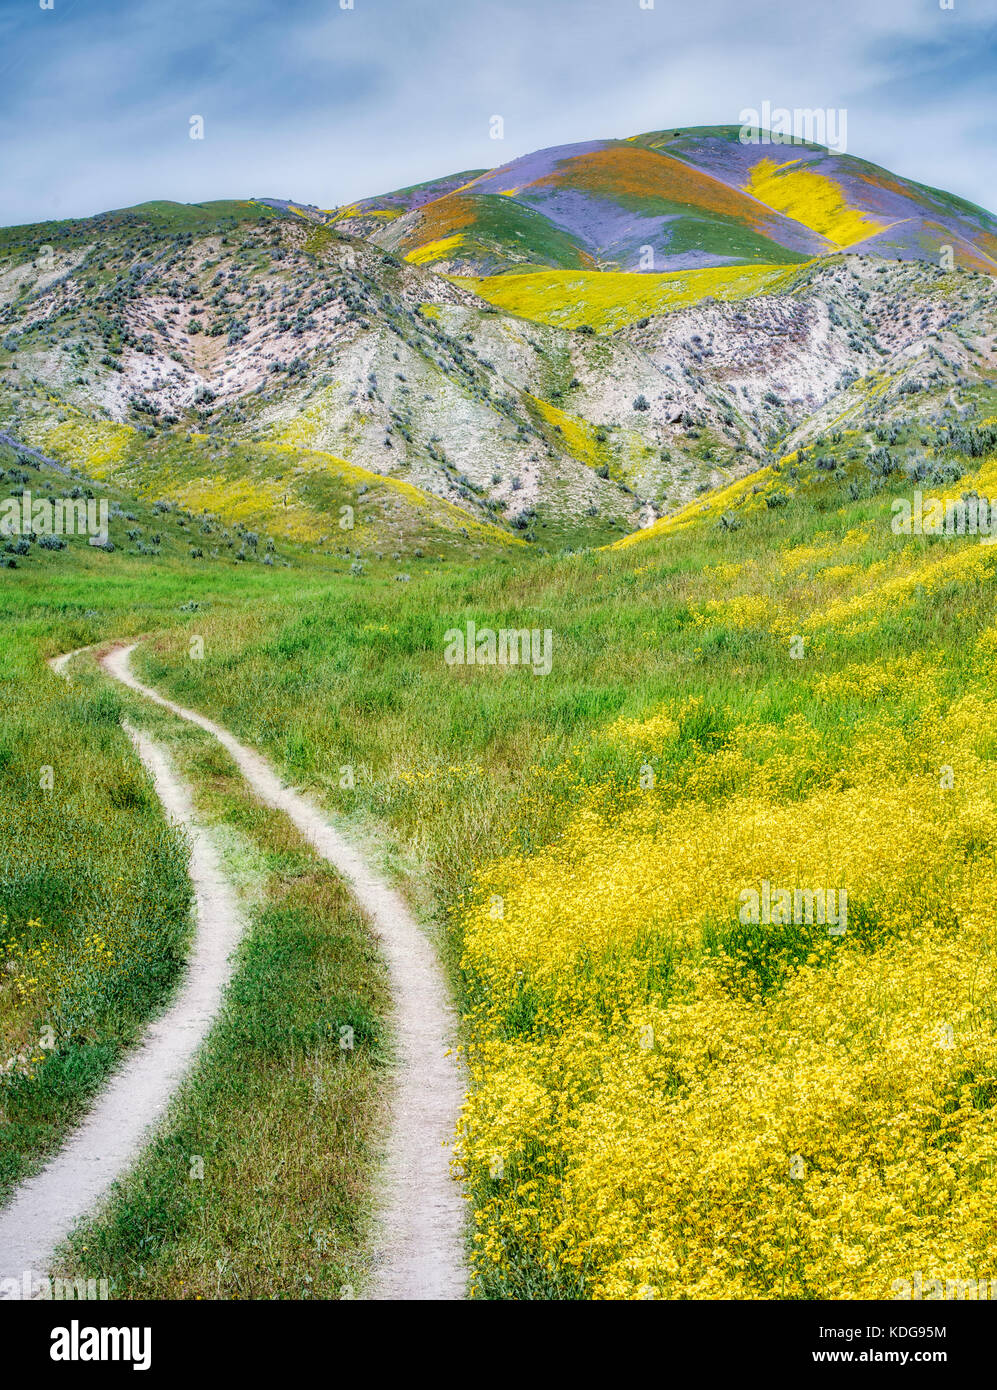 Field of Hillside Daisies (Monolopia lanceolata) and dirt road Carrizo Plain National Monument, California - Stock Image